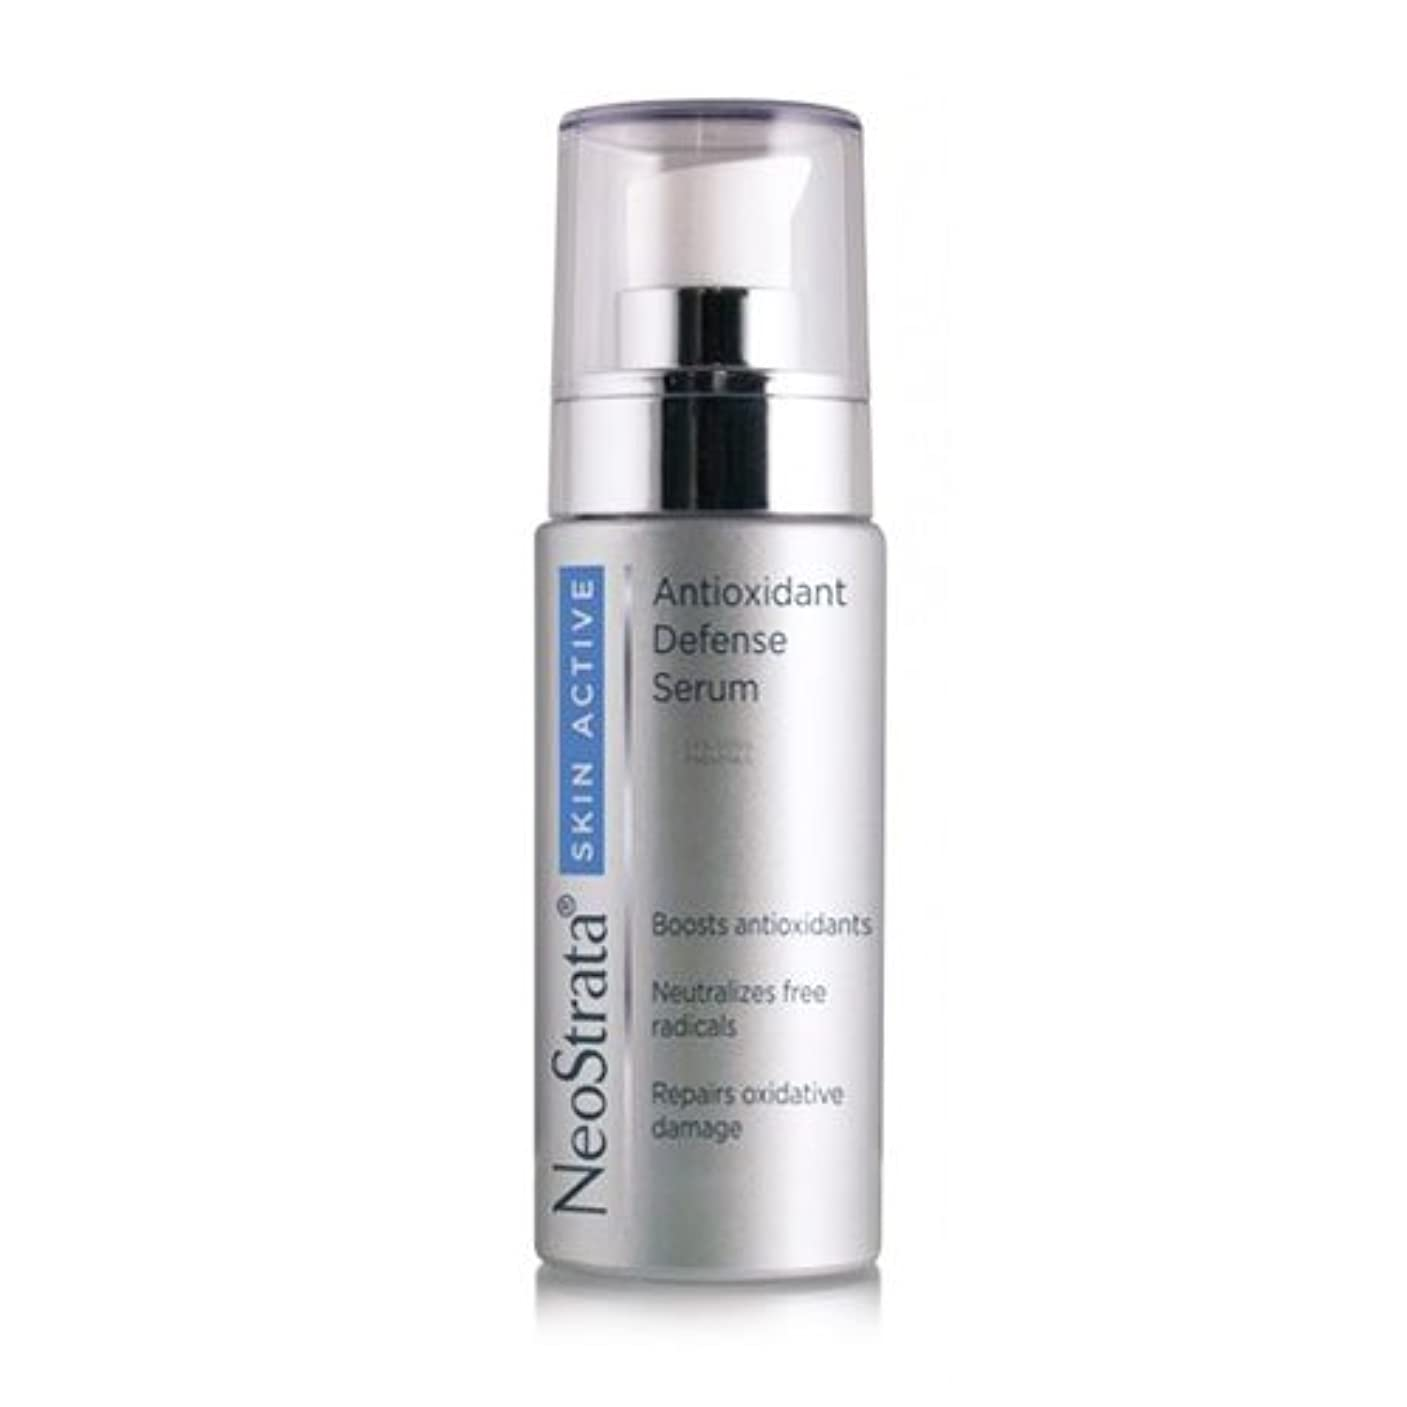 反対する衣類ノベルティNeostrata Skin Active Antioxidant Defense Serum 30ml [並行輸入品]